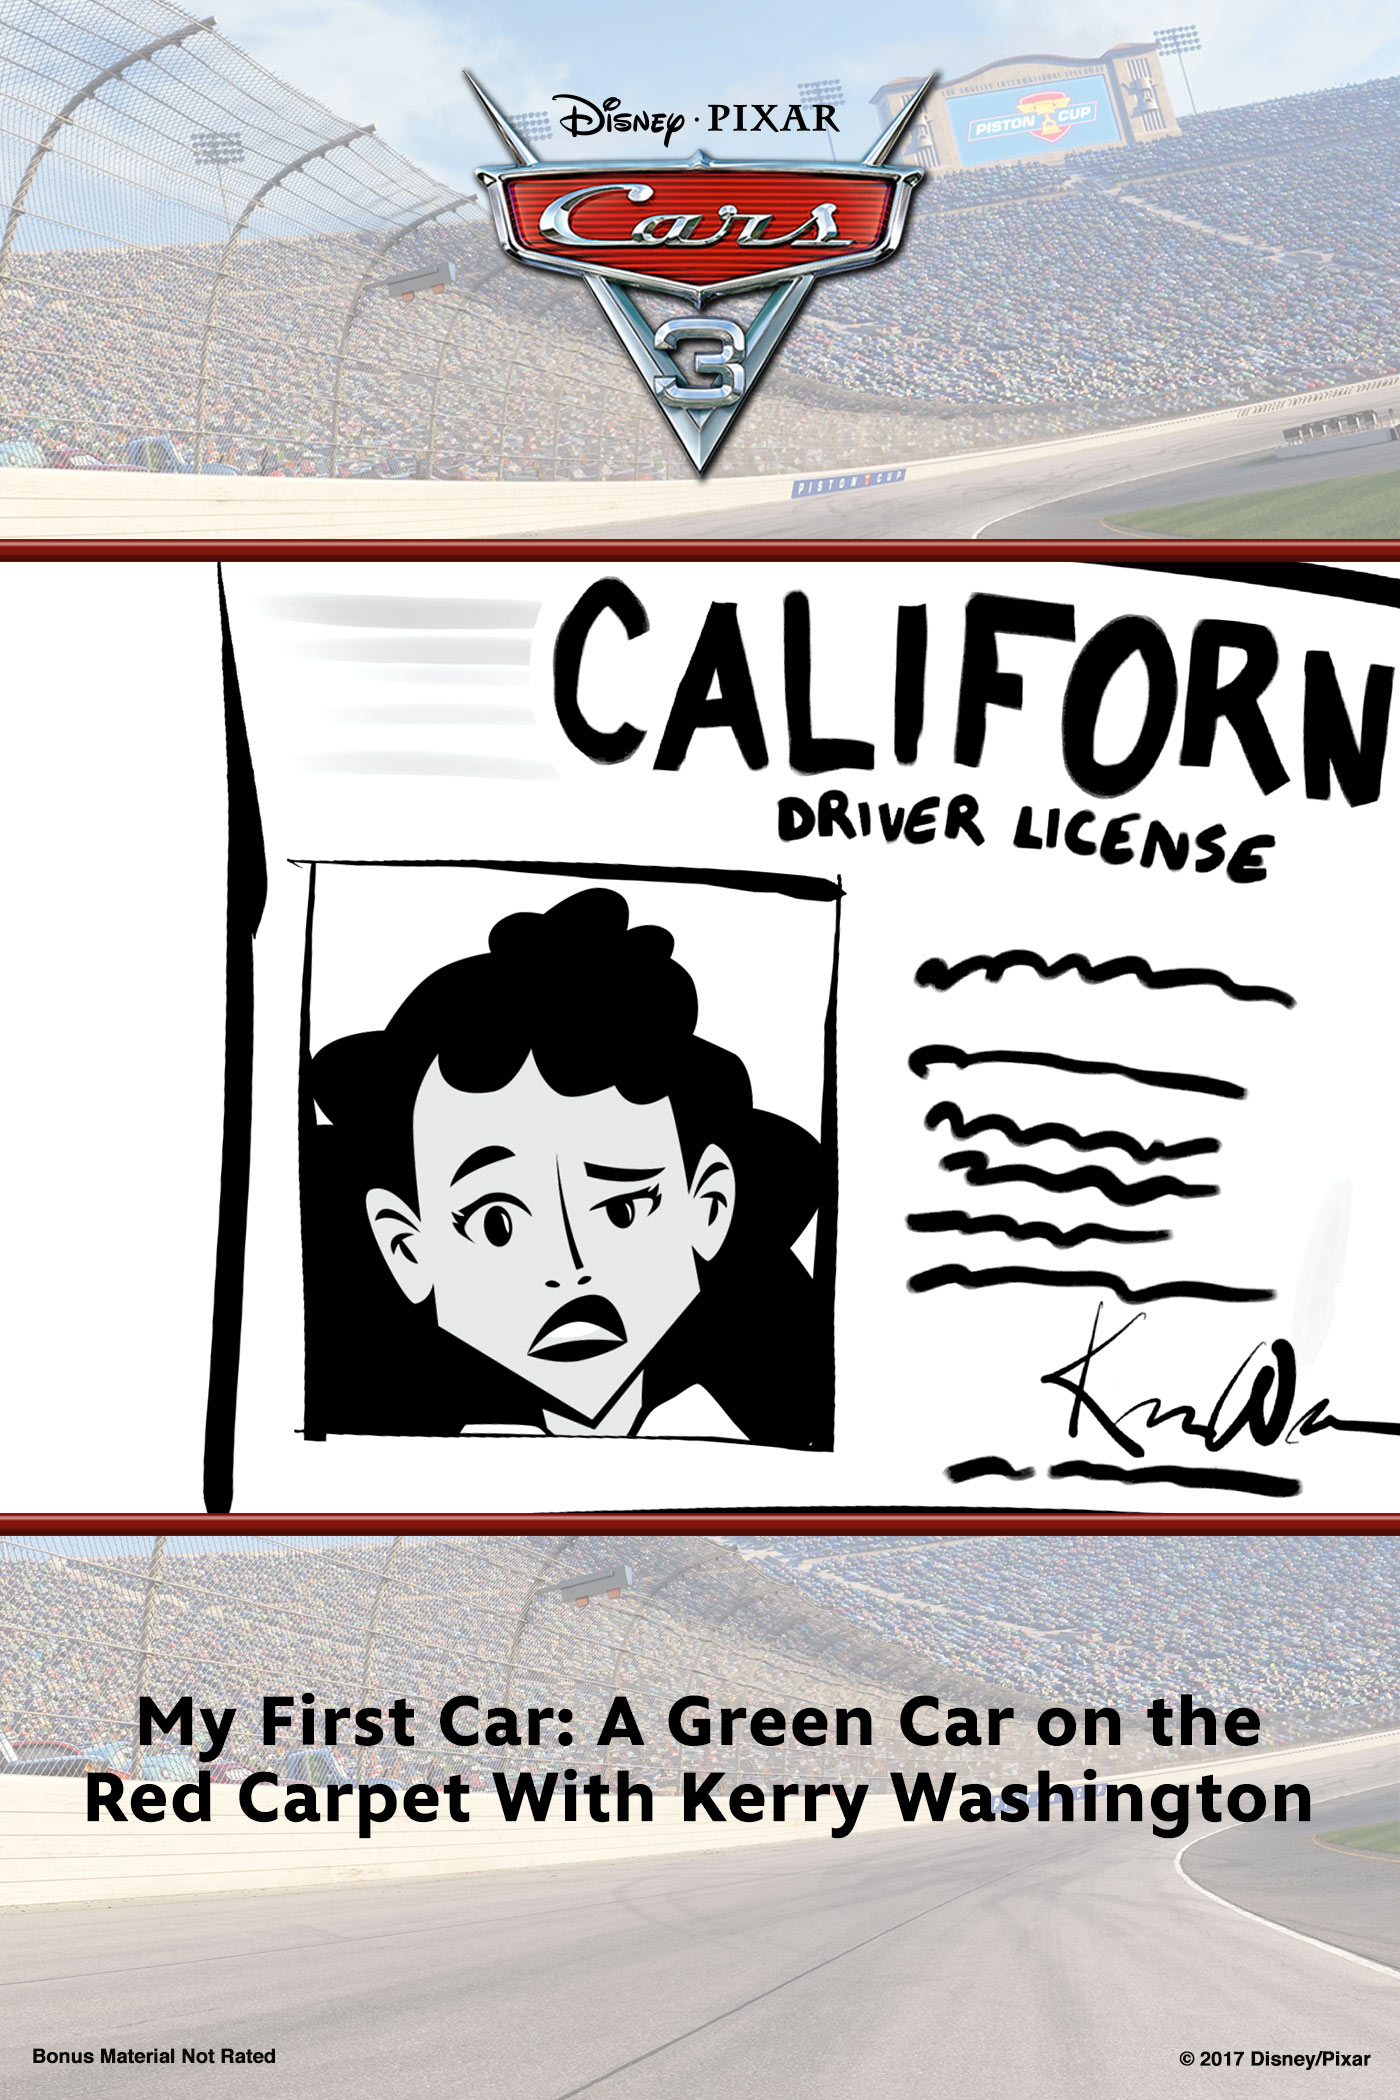 My First Car: A Green Car on the Red Carpet With Kerry Washington